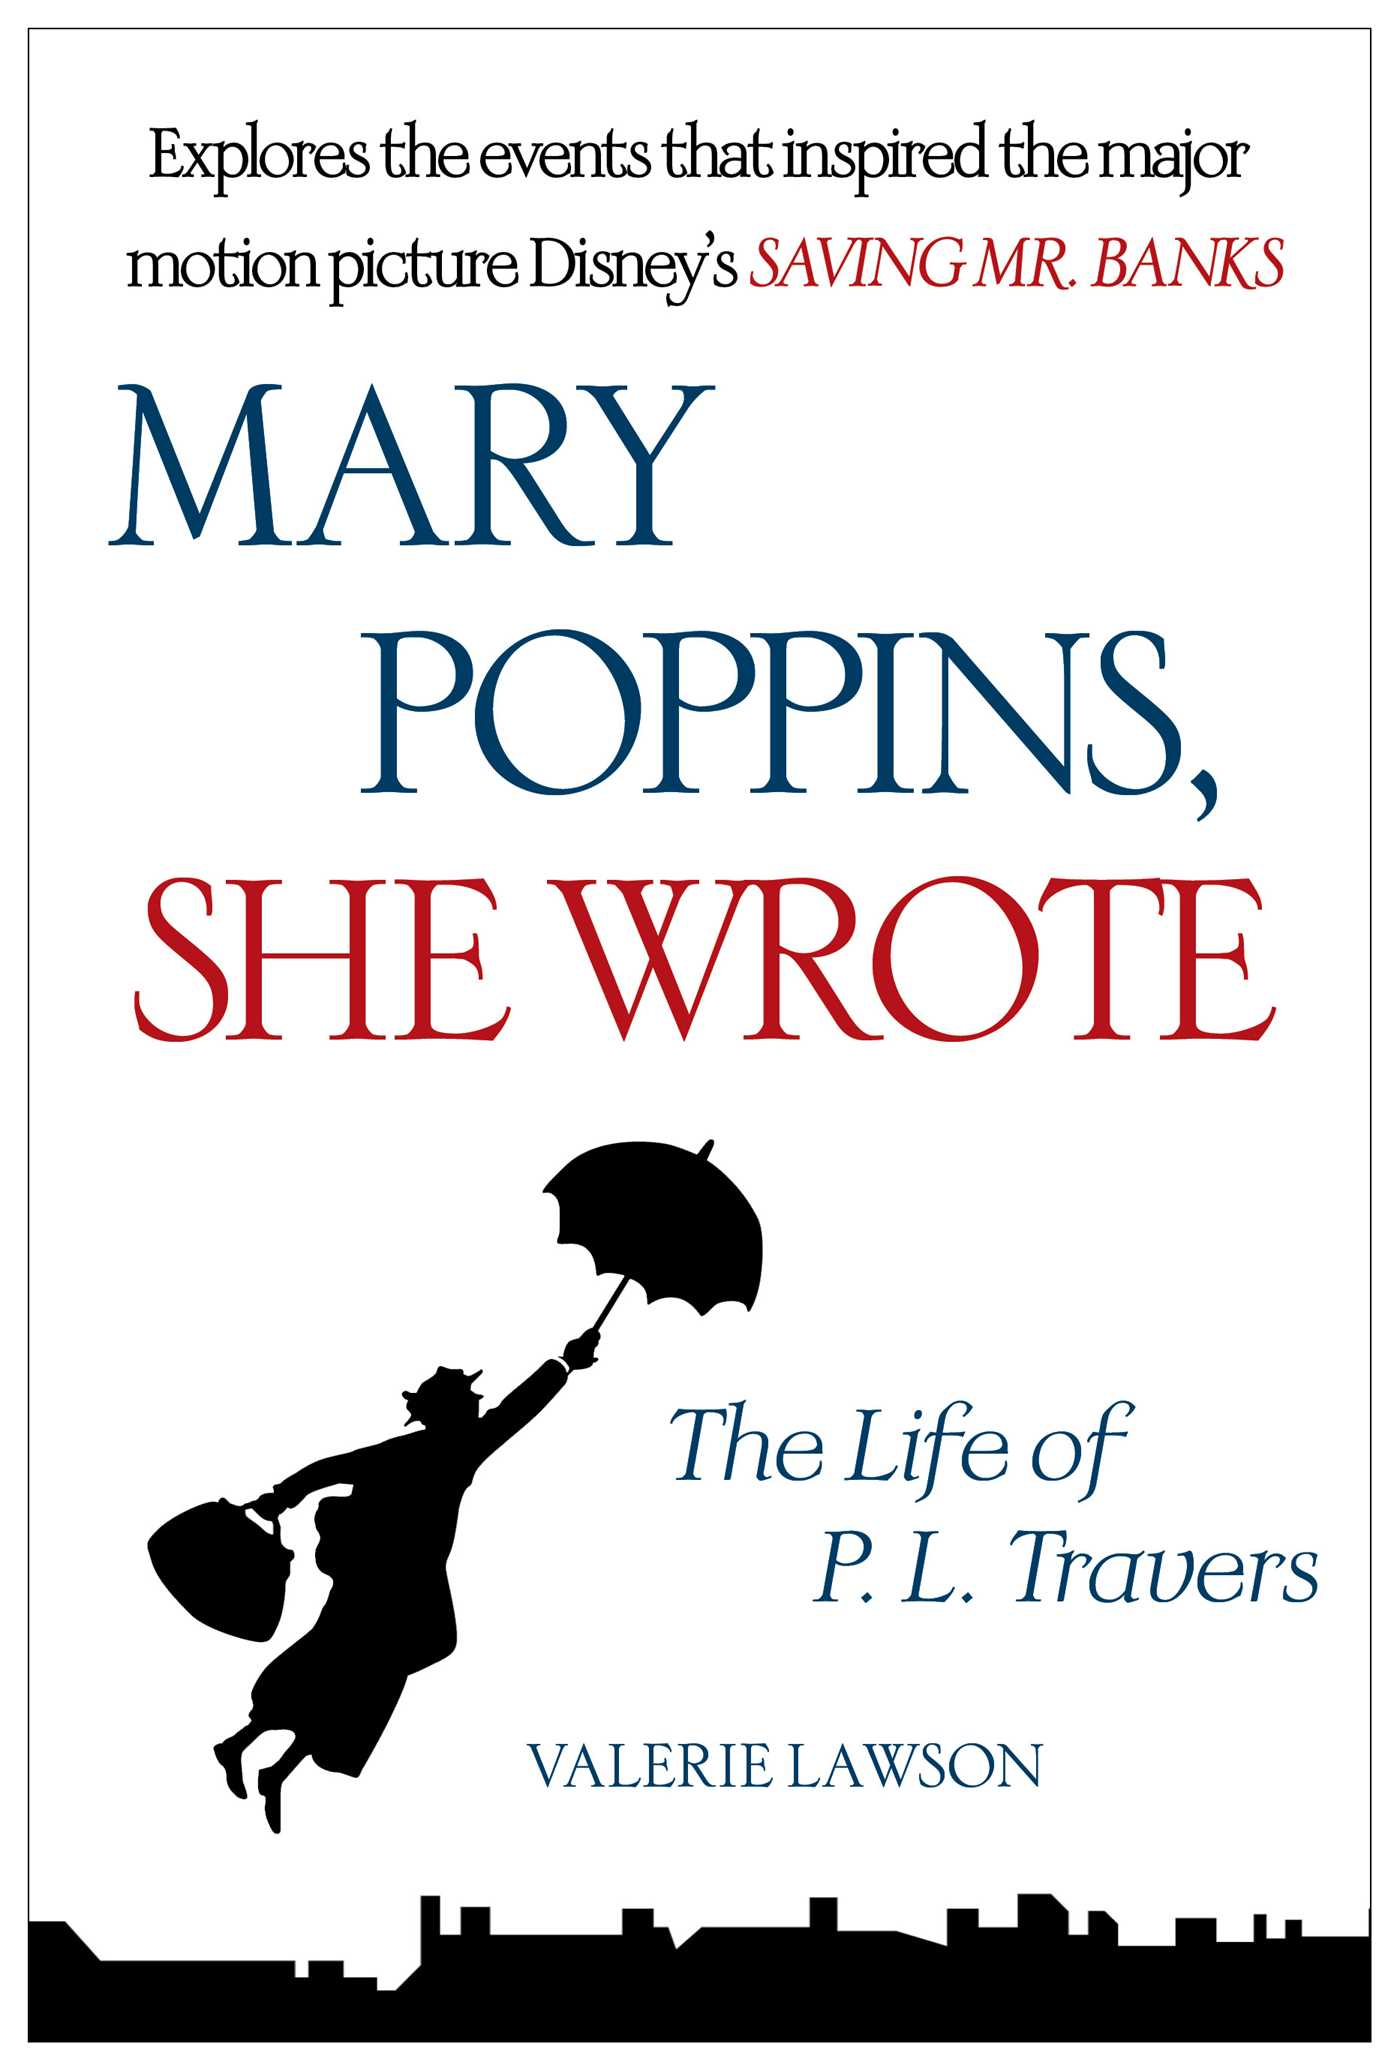 Mary-poppins-she-wrote-9781476762937_hr